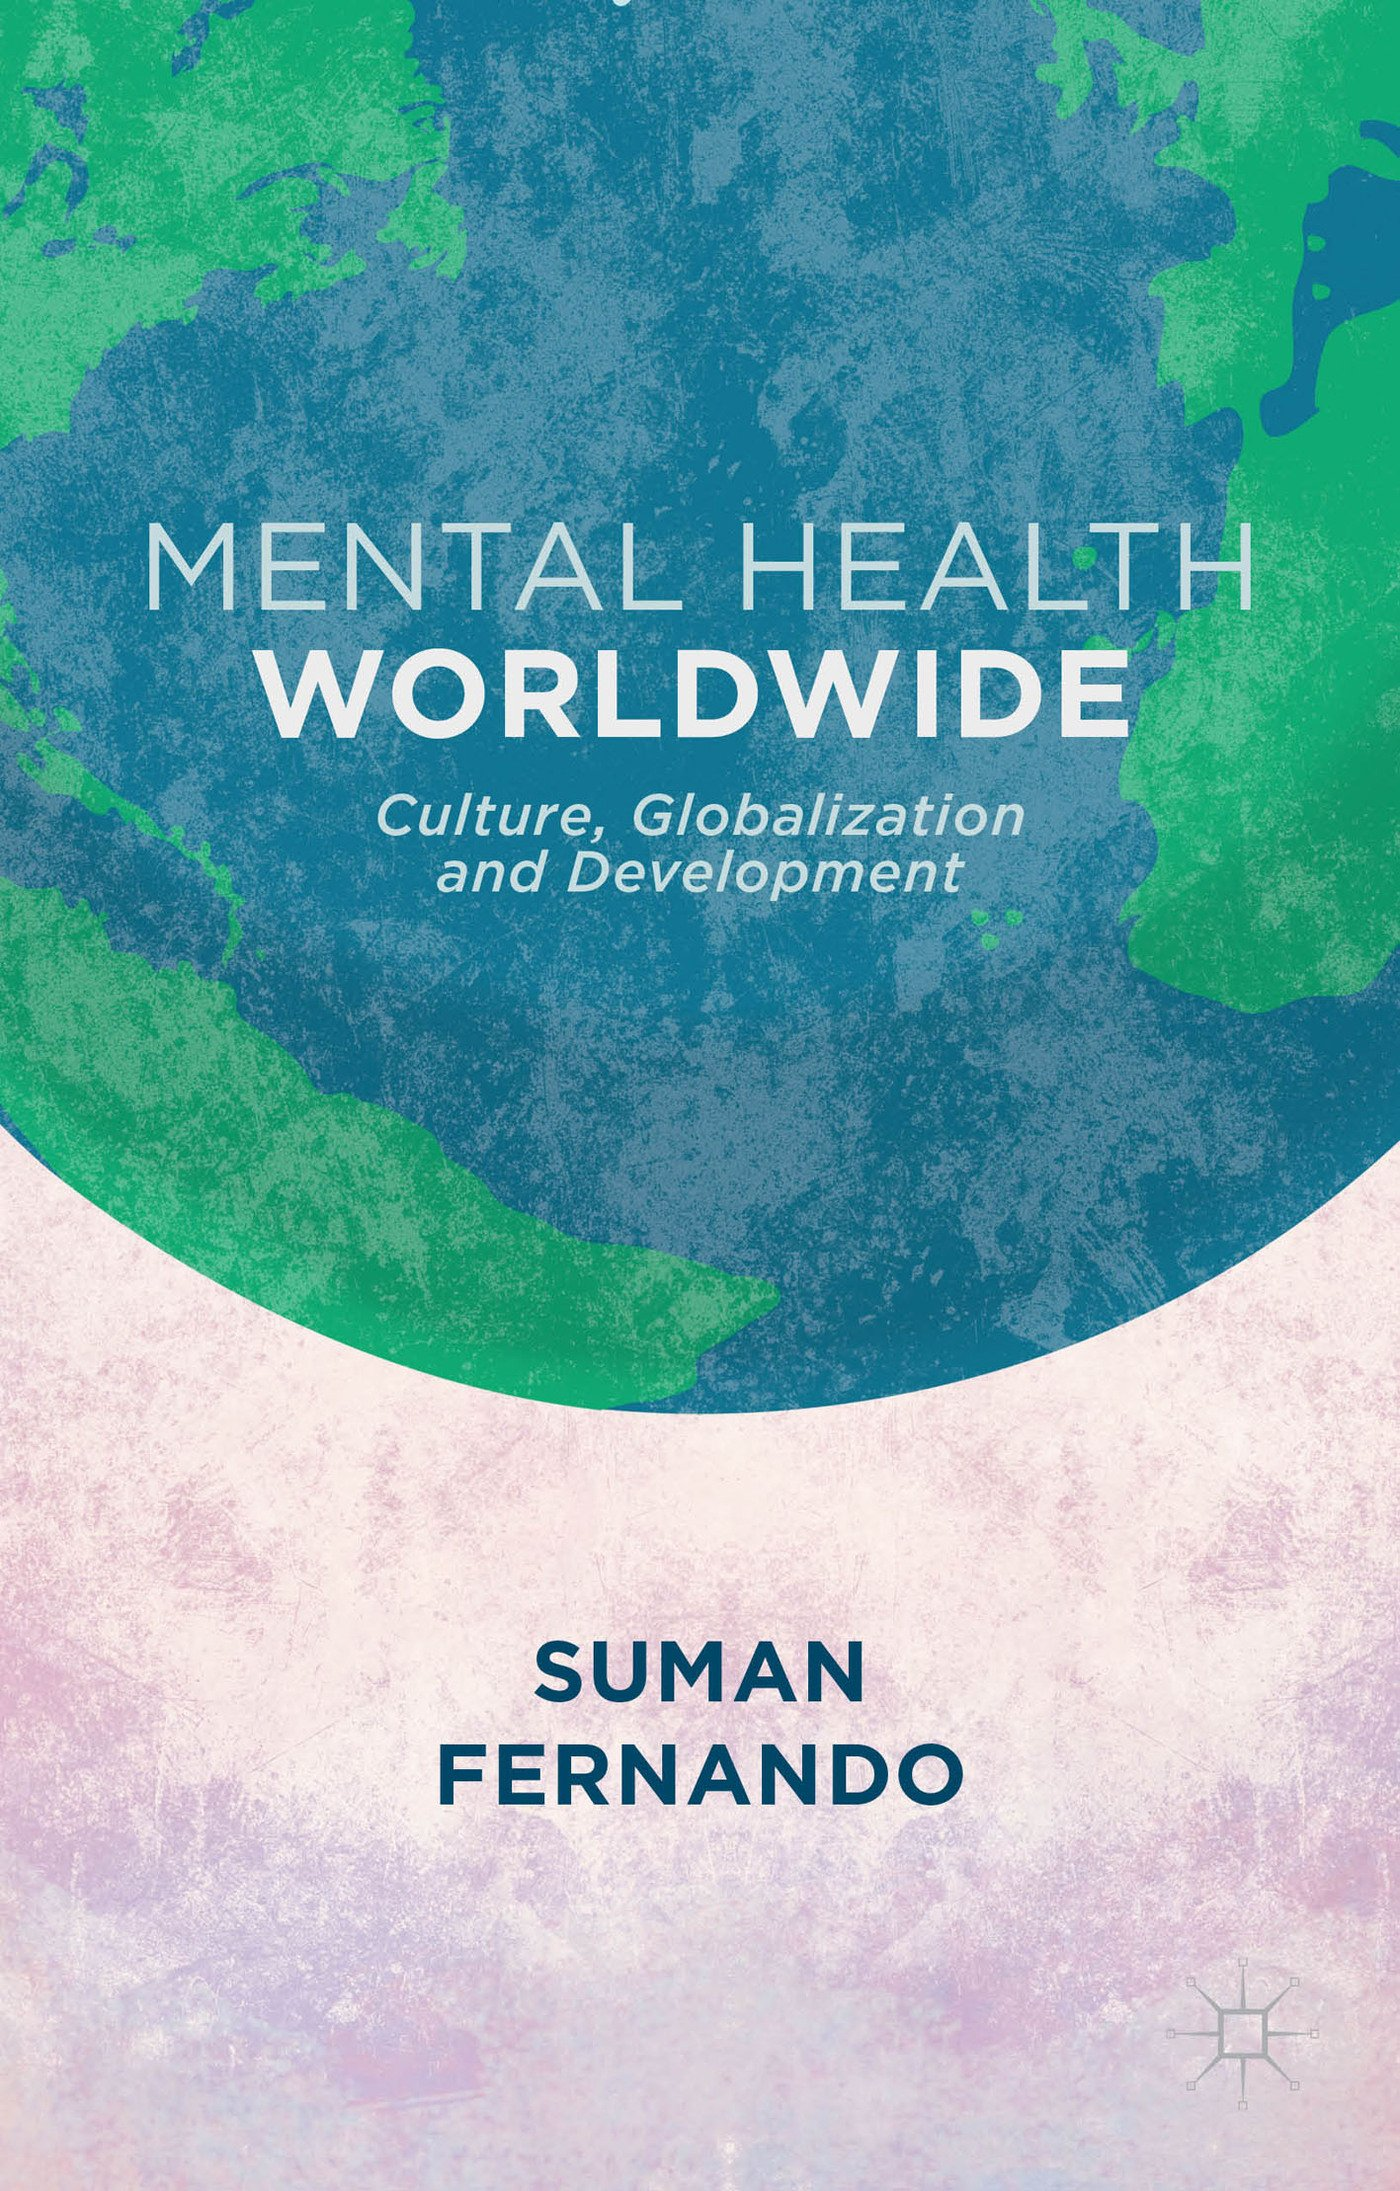 Fernando, Suman. Mental Health Worldwide: Culture, Globalization, and Development